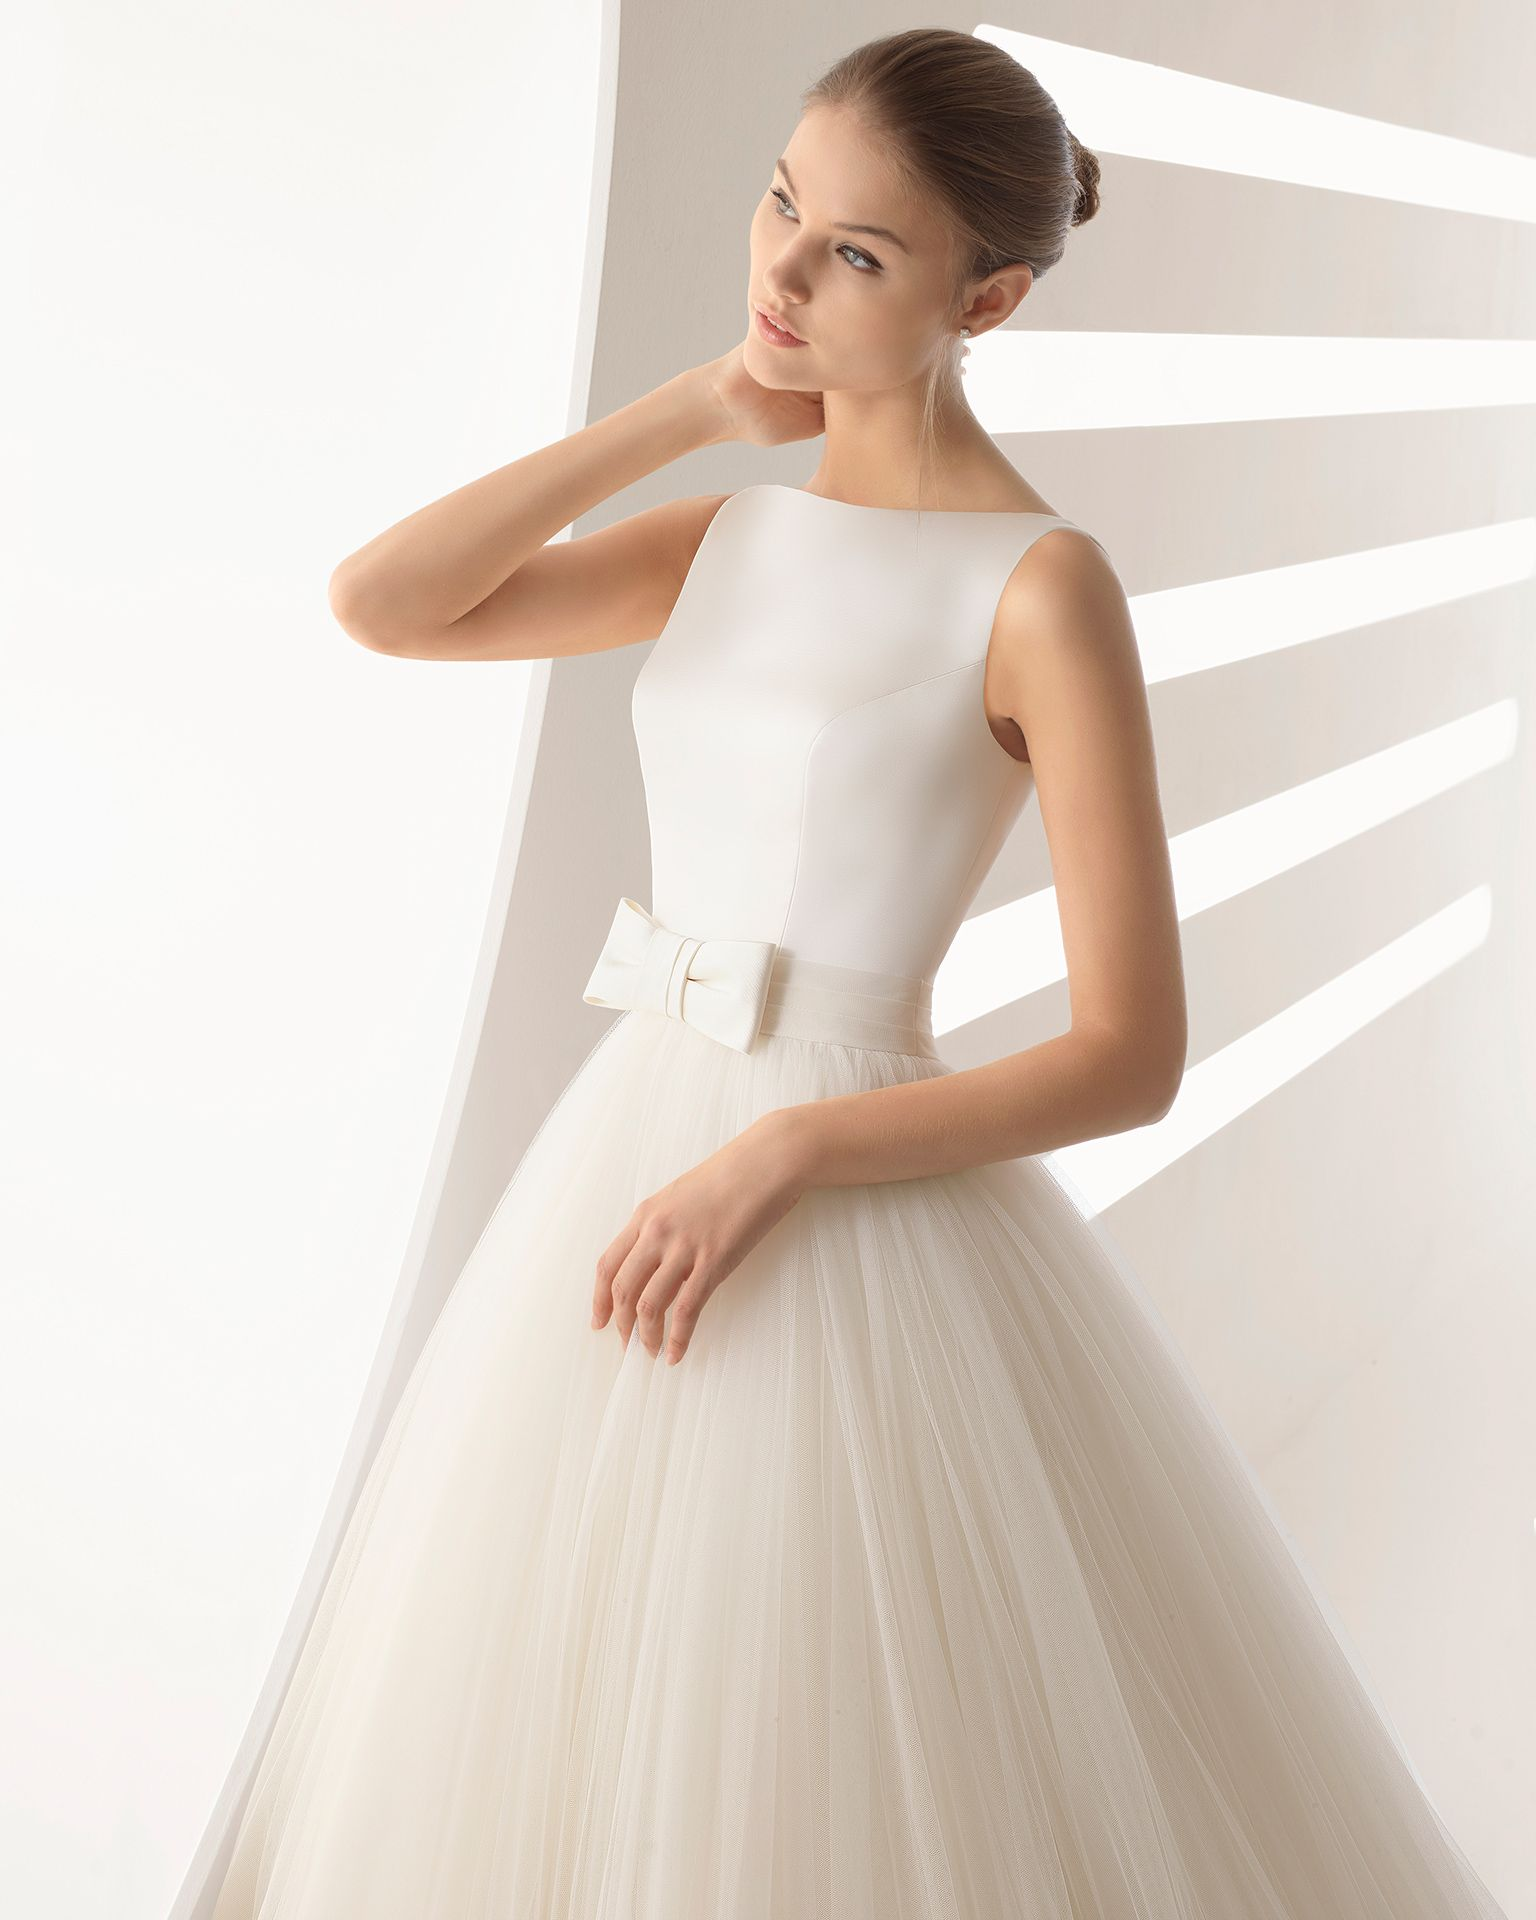 1e7f9beafd1e Princess-style duchess satin and soft tulle wedding dress with bateau  neckline and full skirt